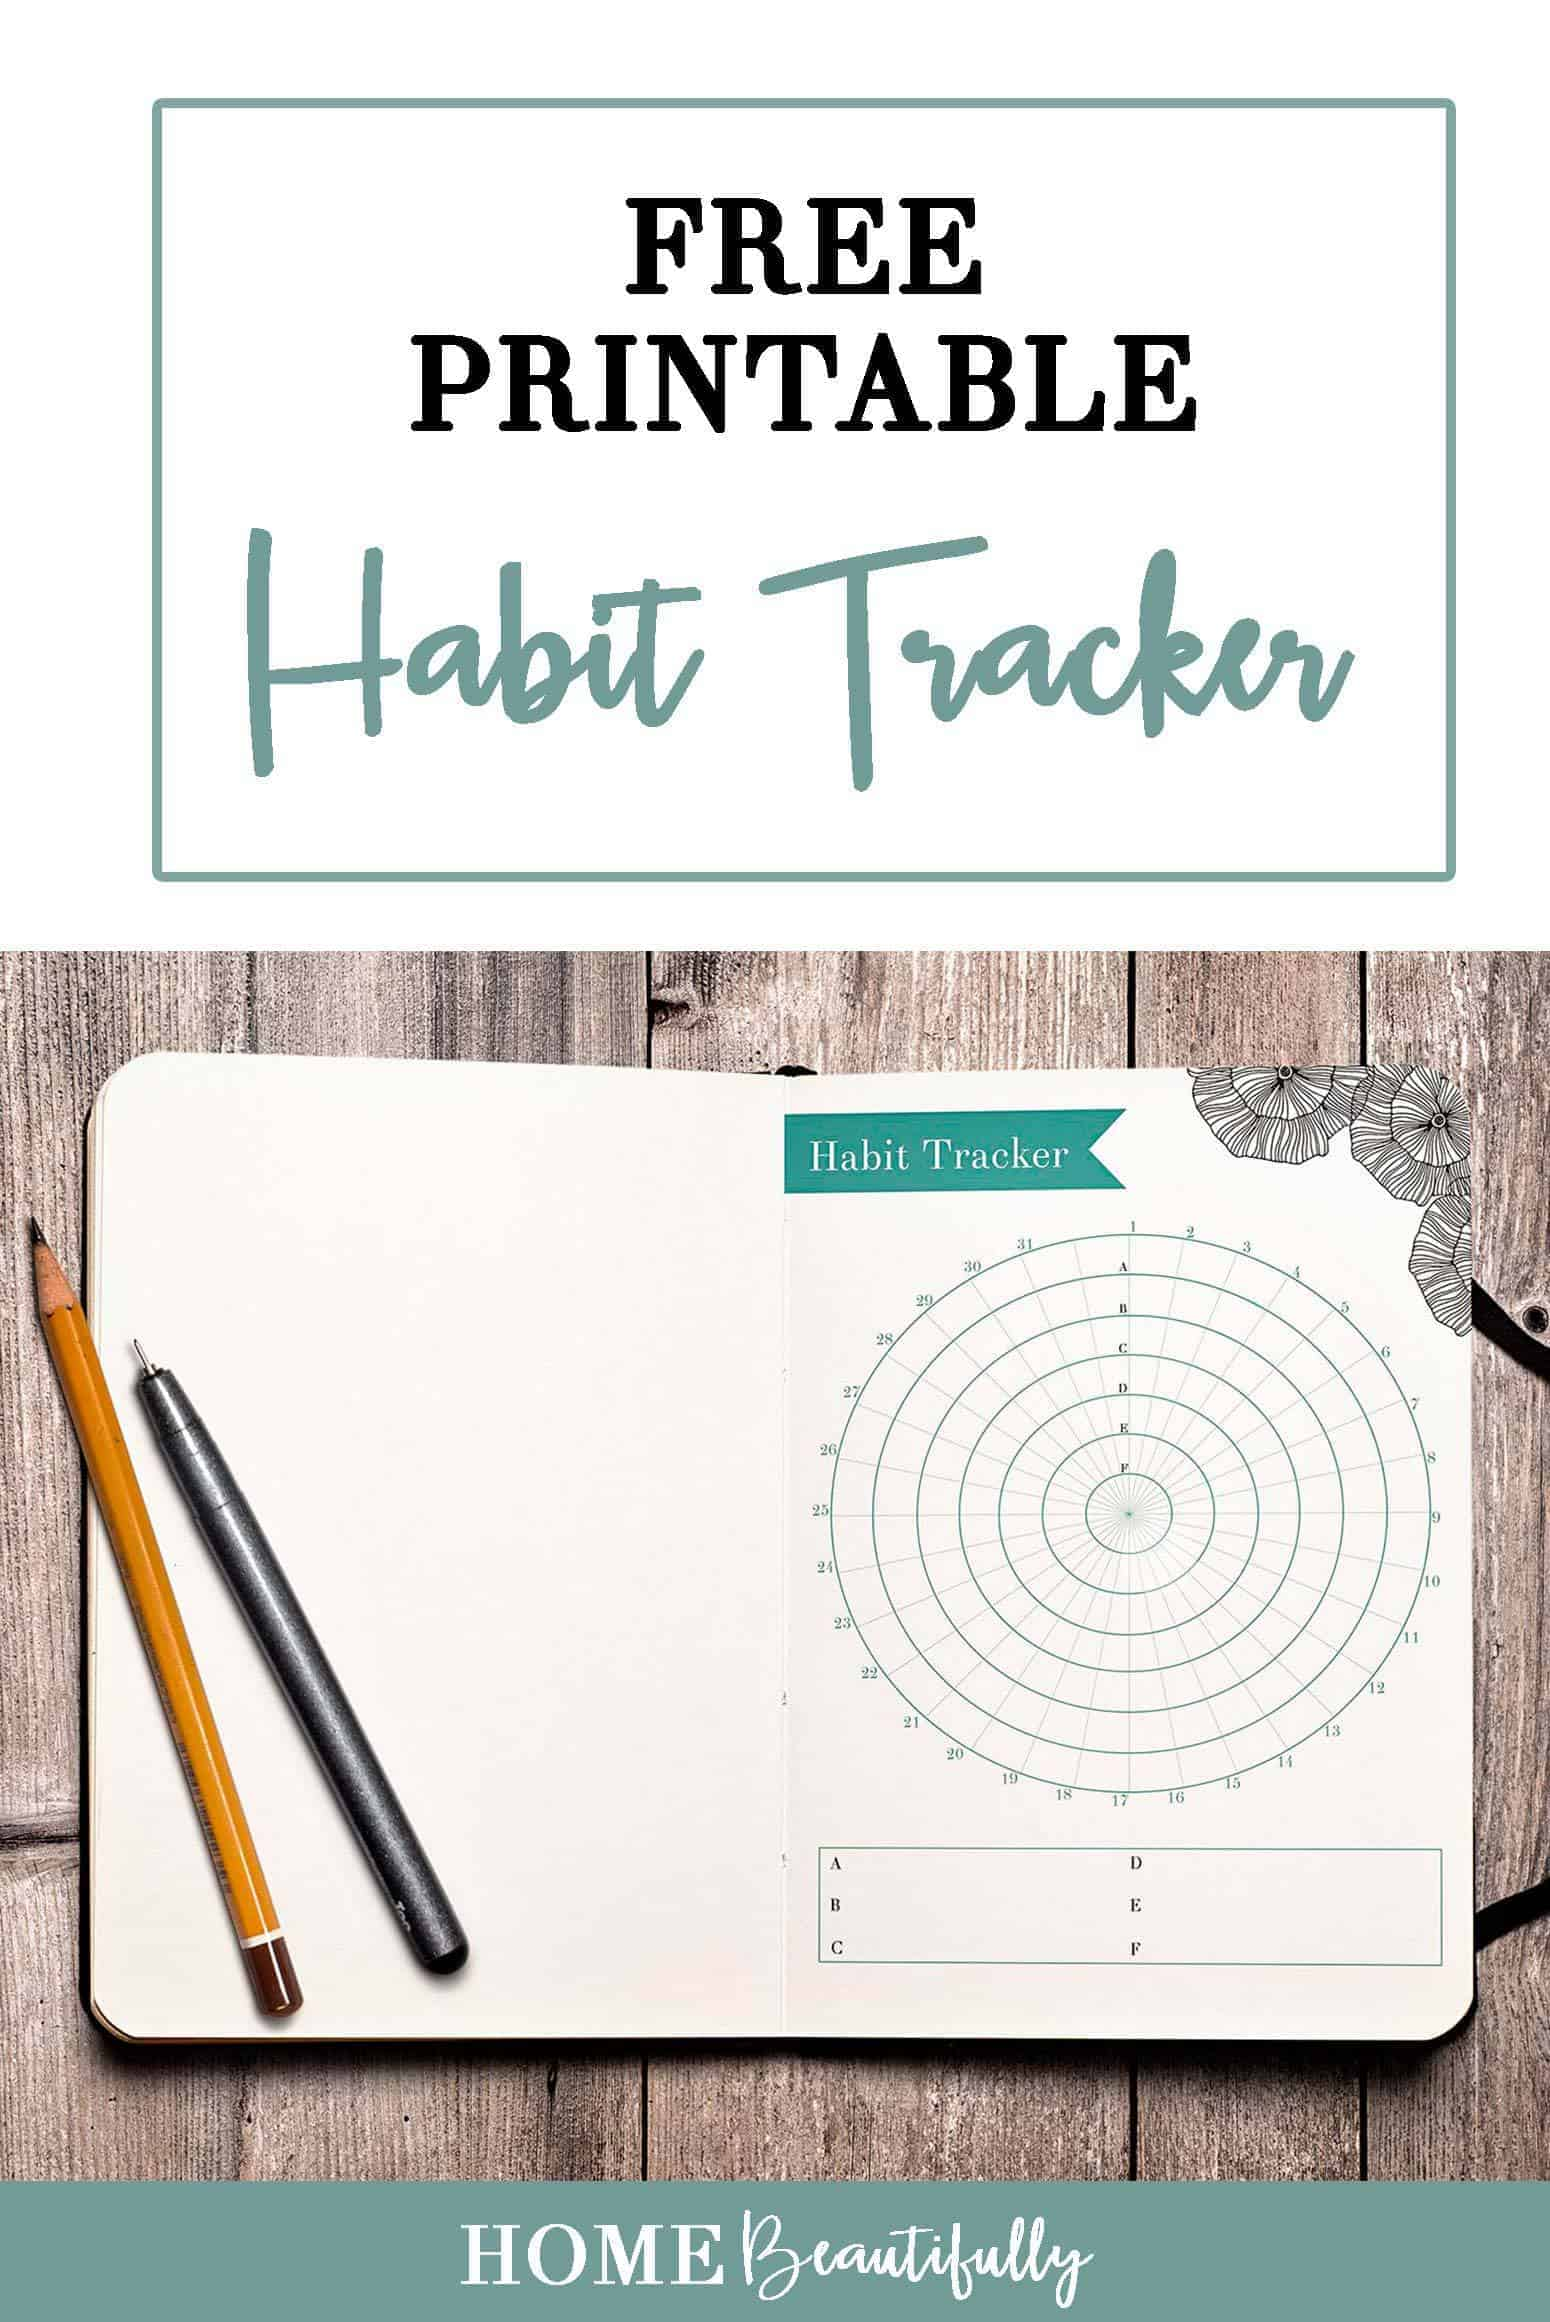 Habit tracke in a journal on a wood background